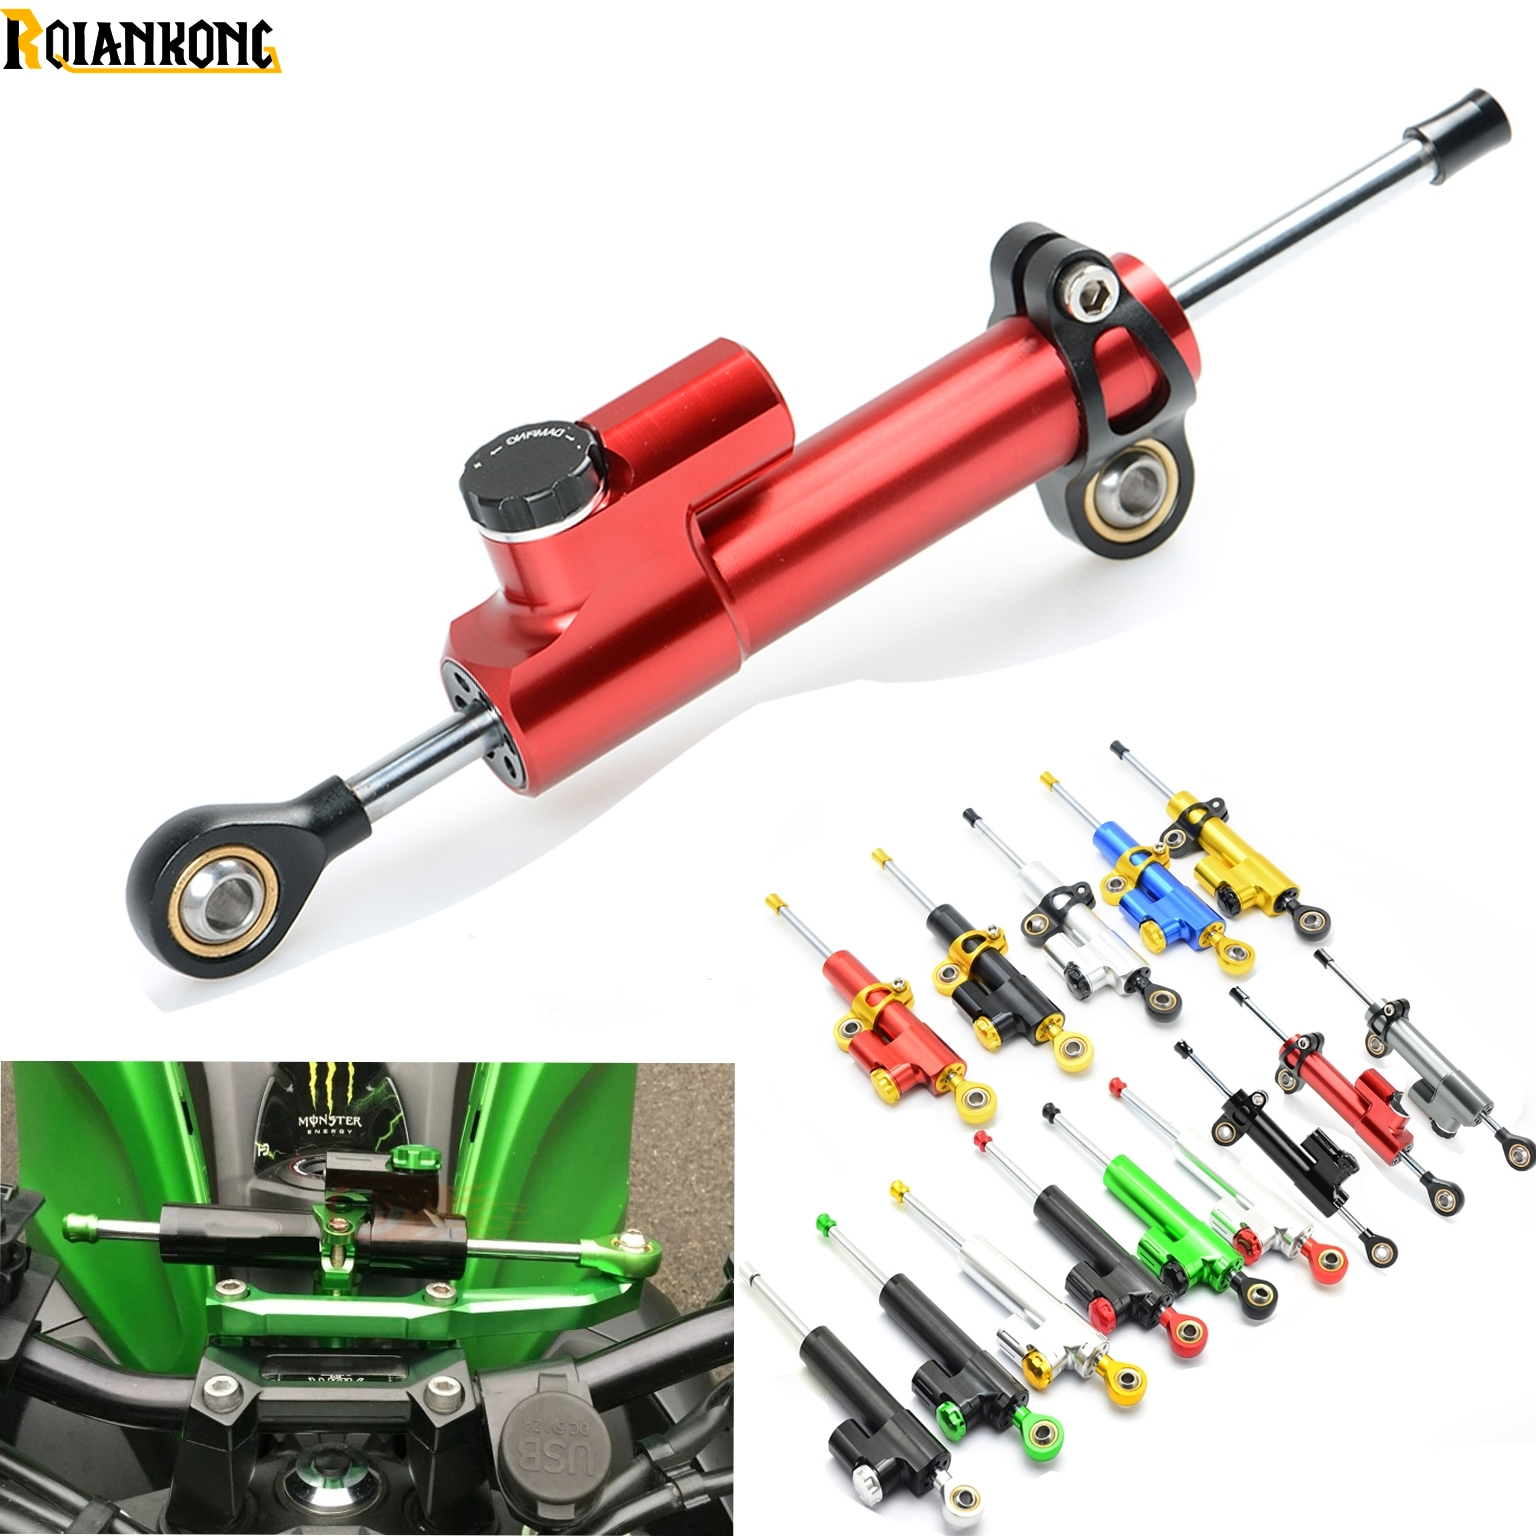 CNC Aluminum Motorcycle Steering Damper Stabilizer Linear Safe Control for TRIUMPH Street Triple R RX ABS TWIN 900 Trophy SE<br>